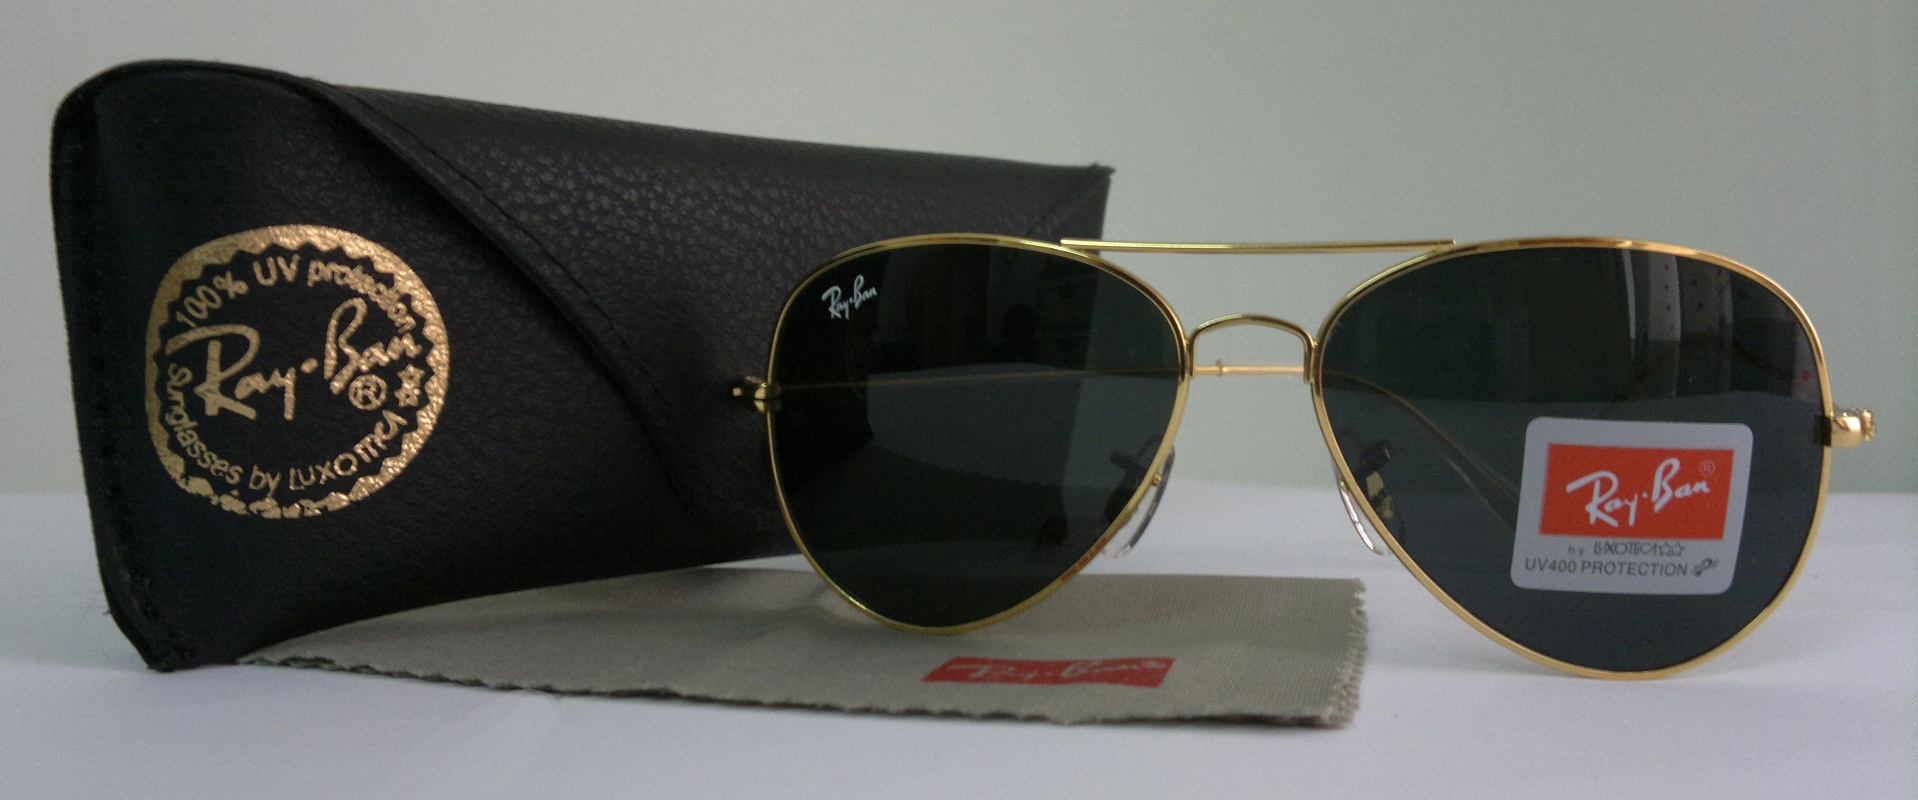 58d38c88c ray ban aviator black with gold frame